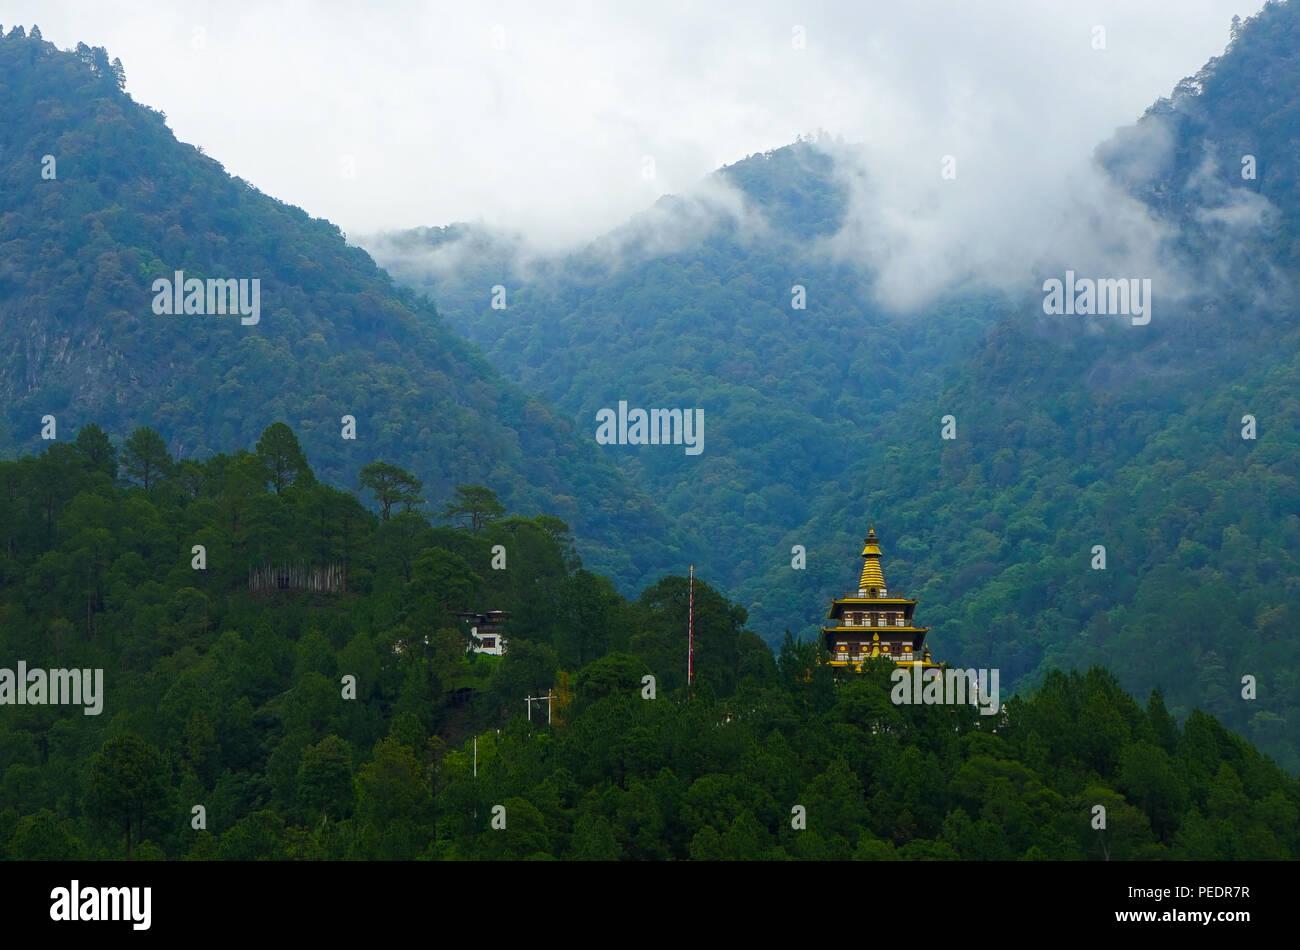 Photo taken in Bhutan and showing unique culture and reiligion. Stock Photo